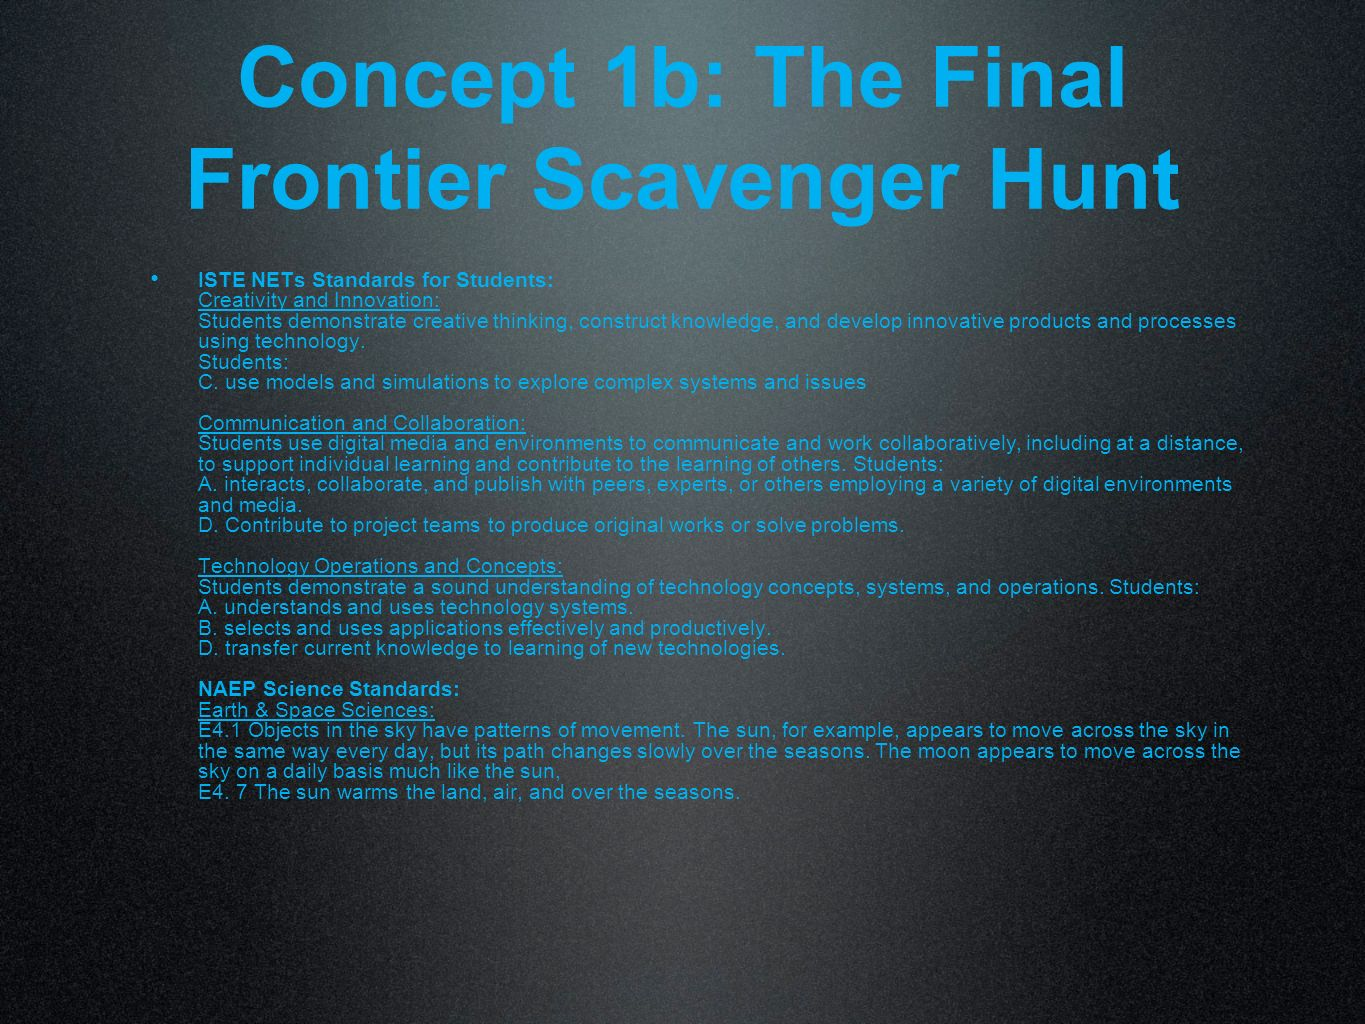 Concept 1b: The Final Frontier Scavenger Hunt